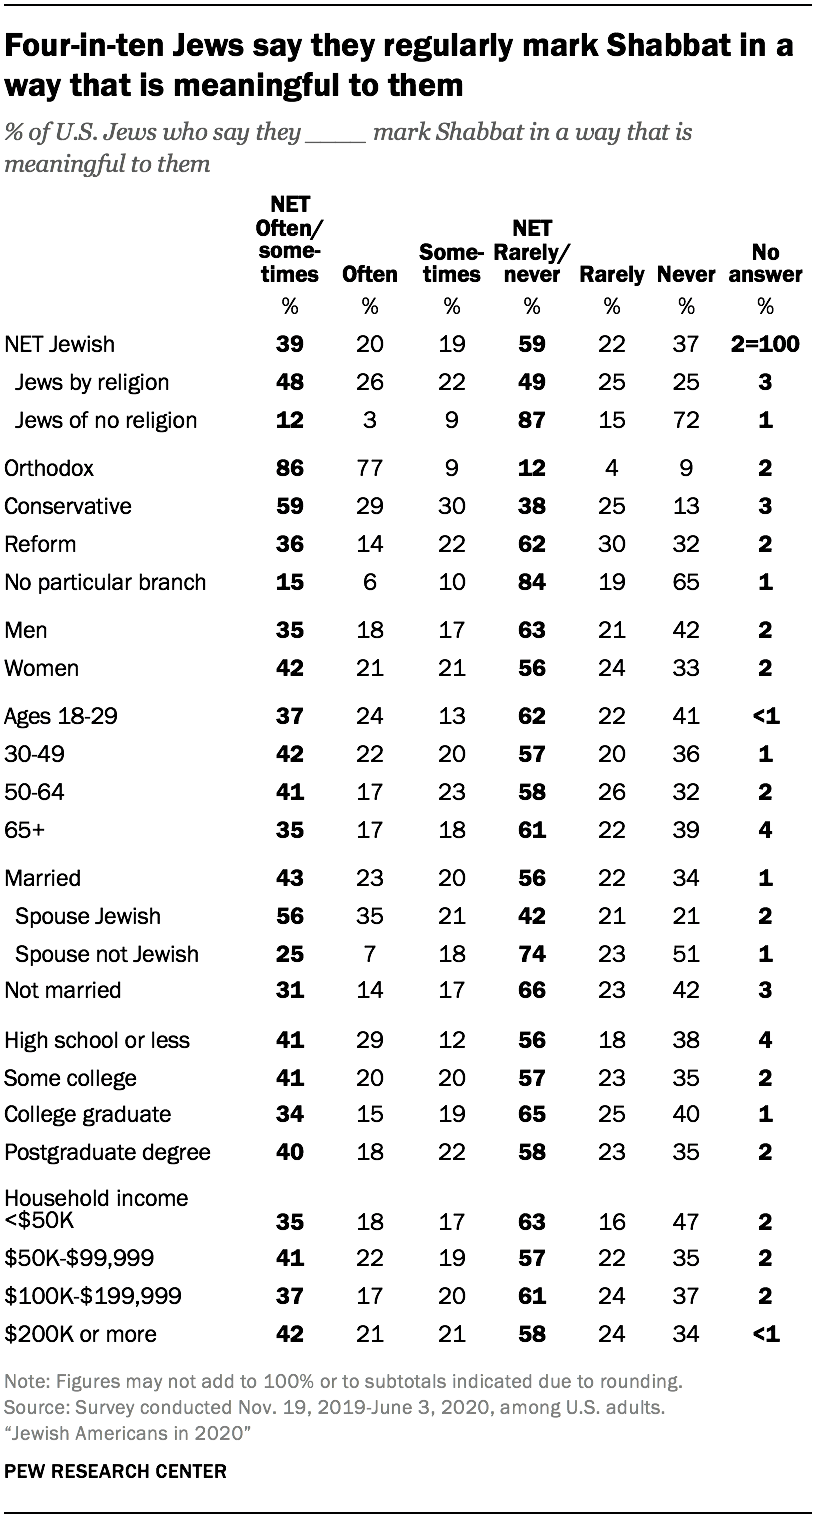 Four-in-ten Jews say they regularly mark Shabbat in a way that is meaningful to them